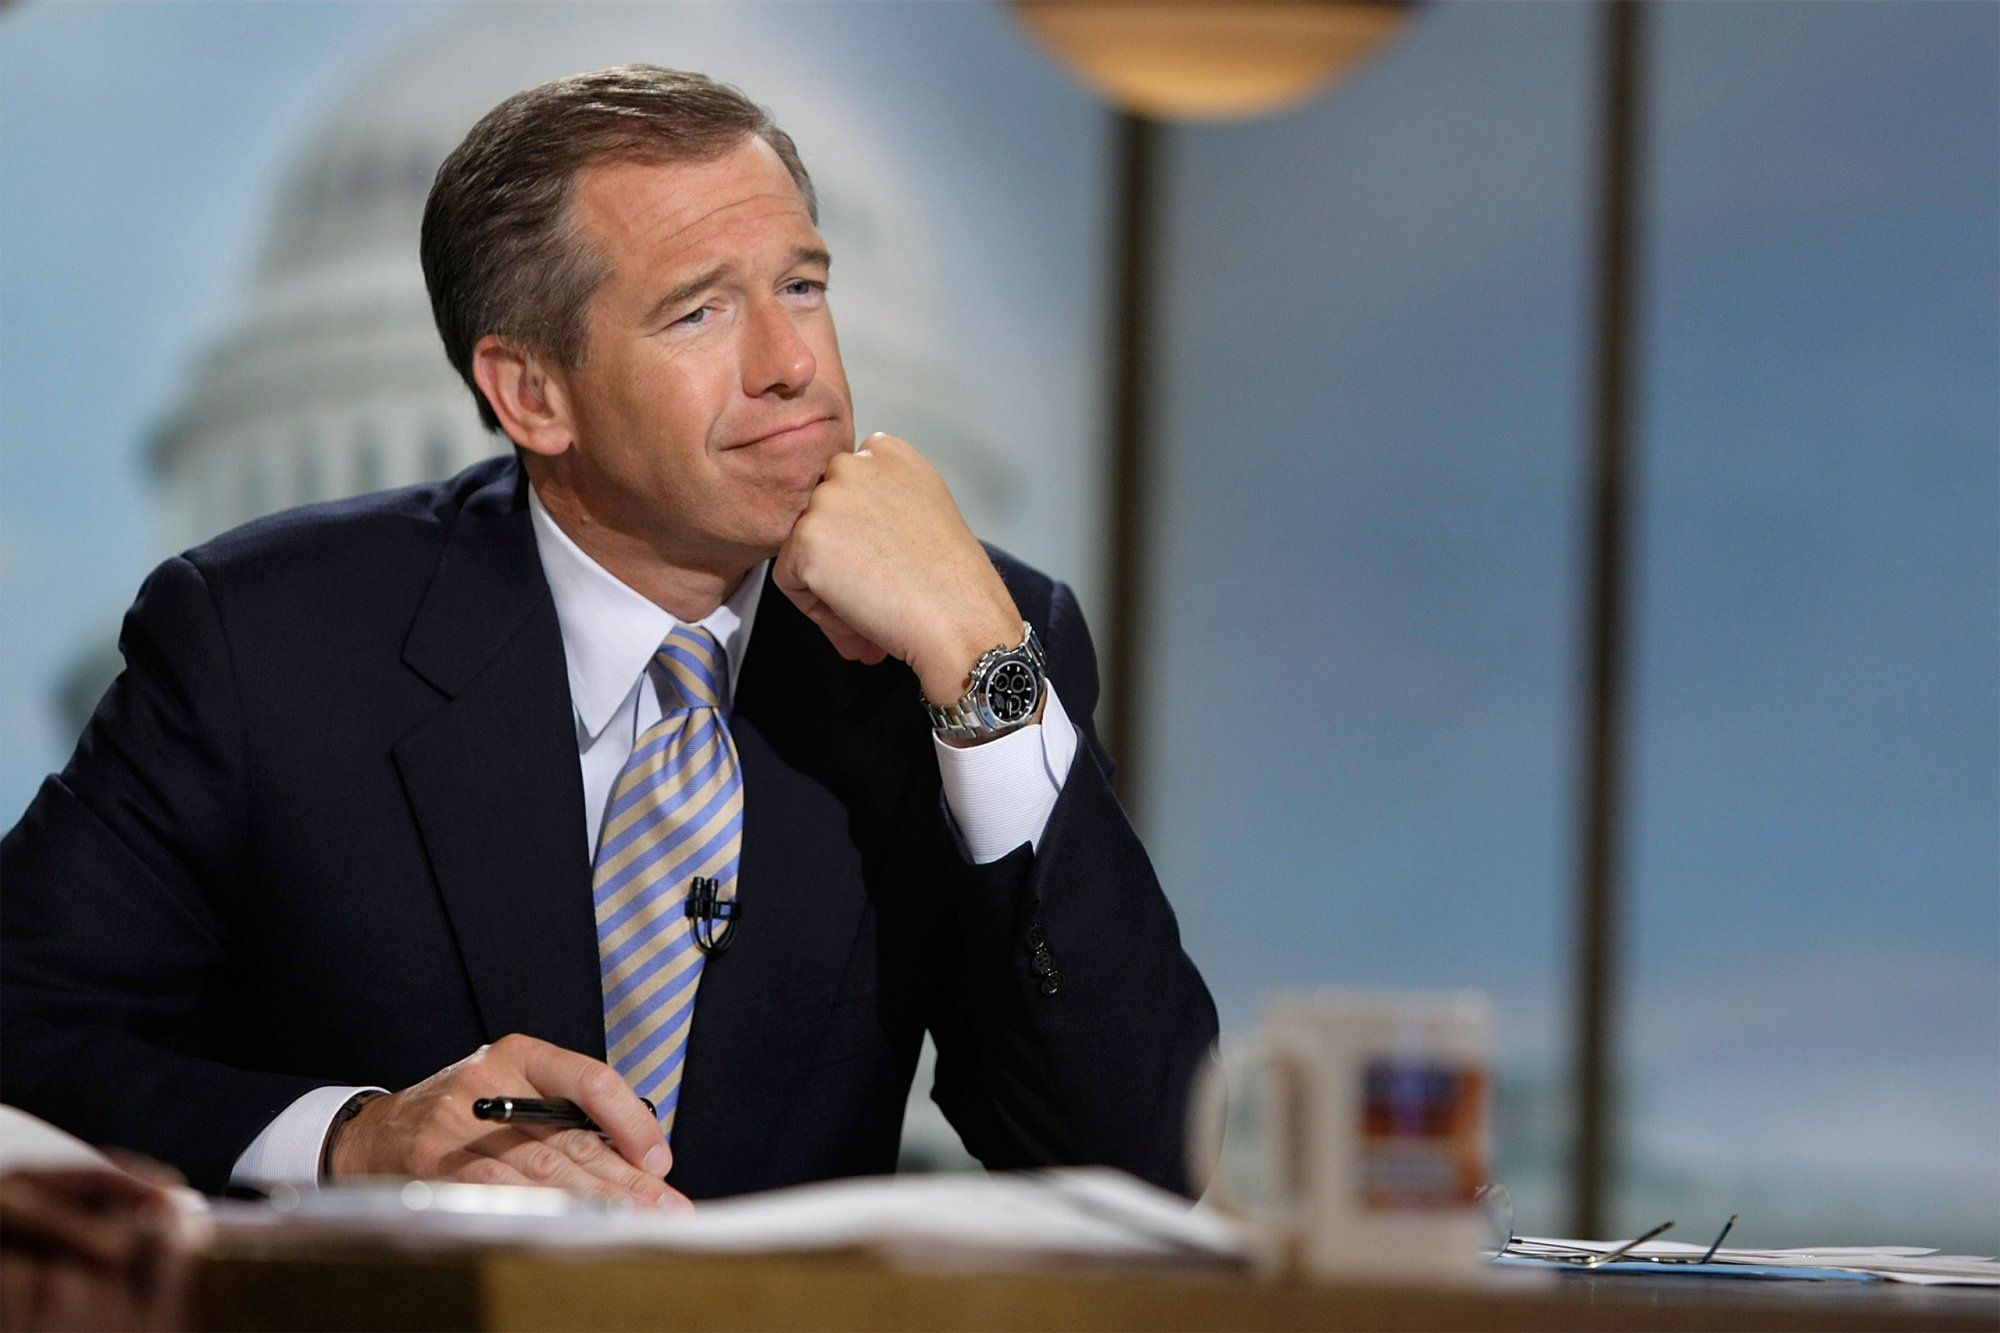 8. Brian Williams Lied About His Time in Iraq